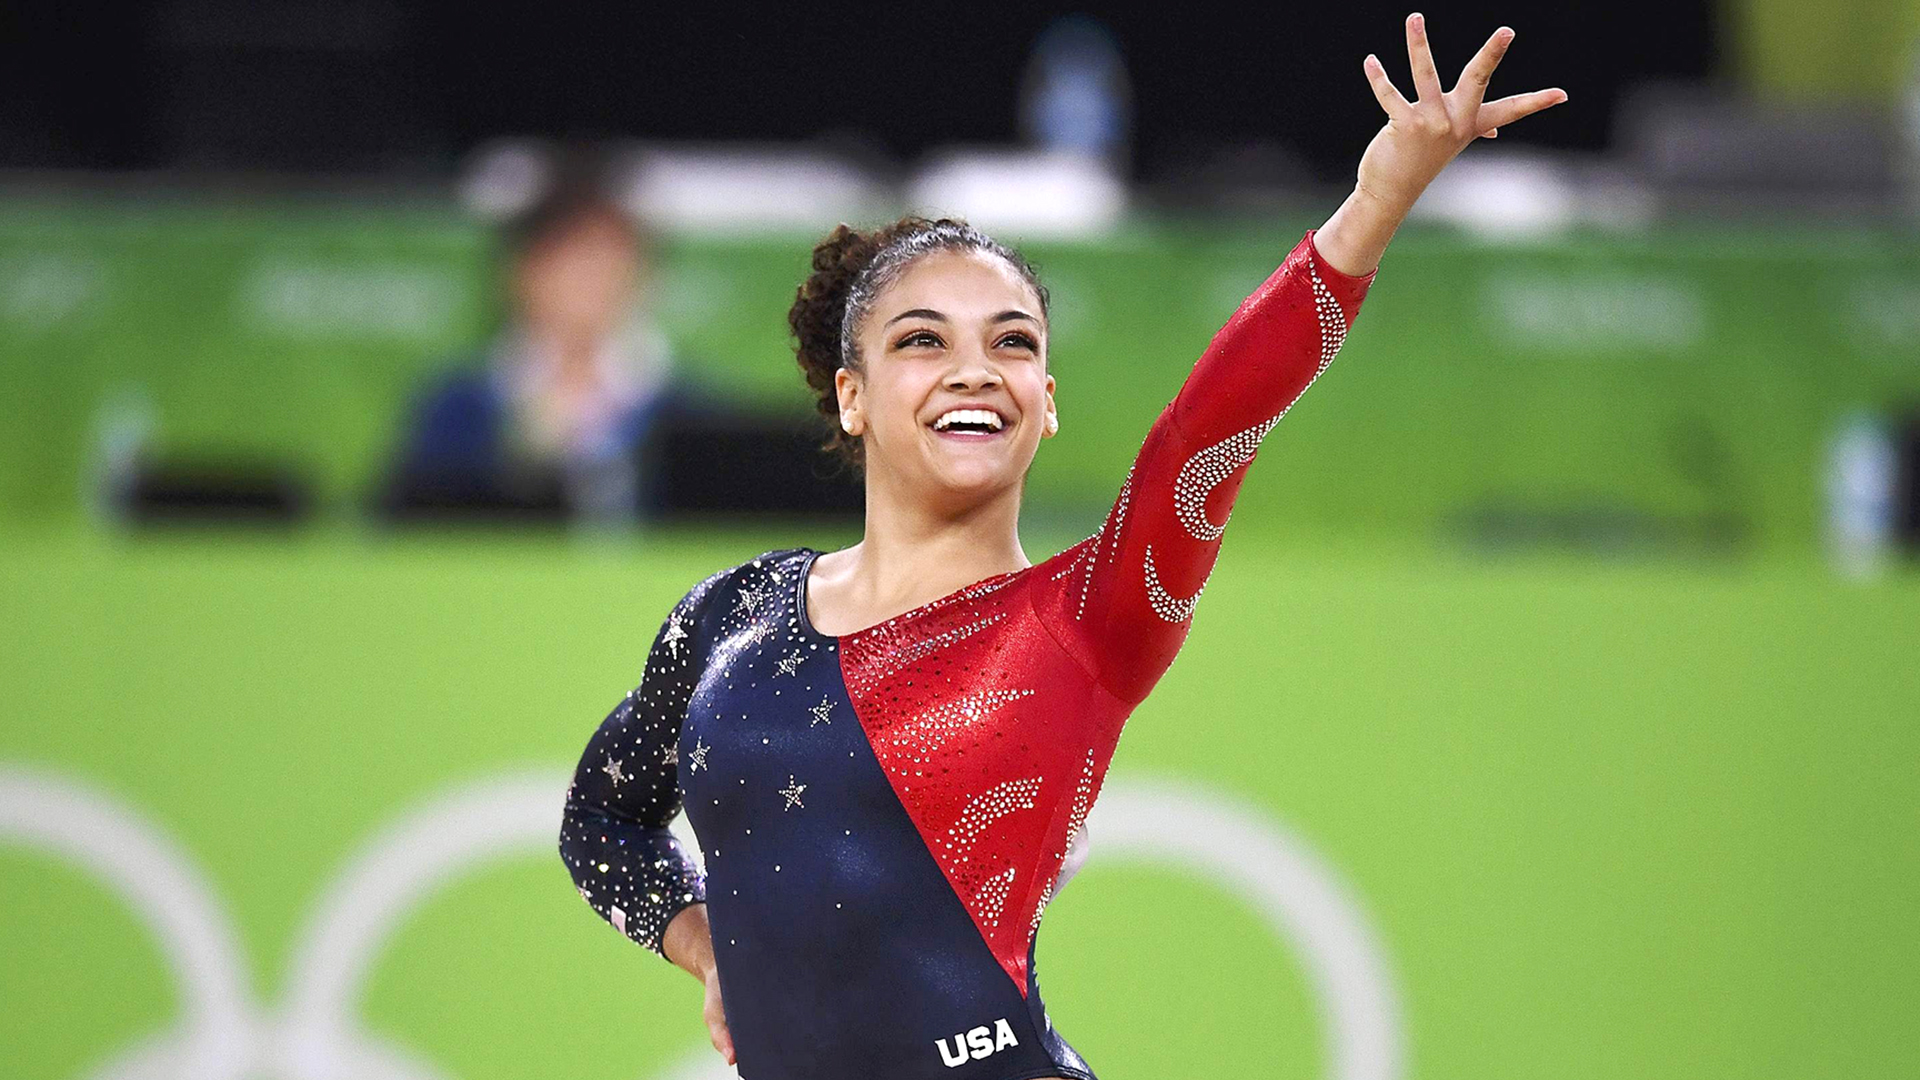 Laurie Hernandez S Brother Wrote Her The Sweetest Note